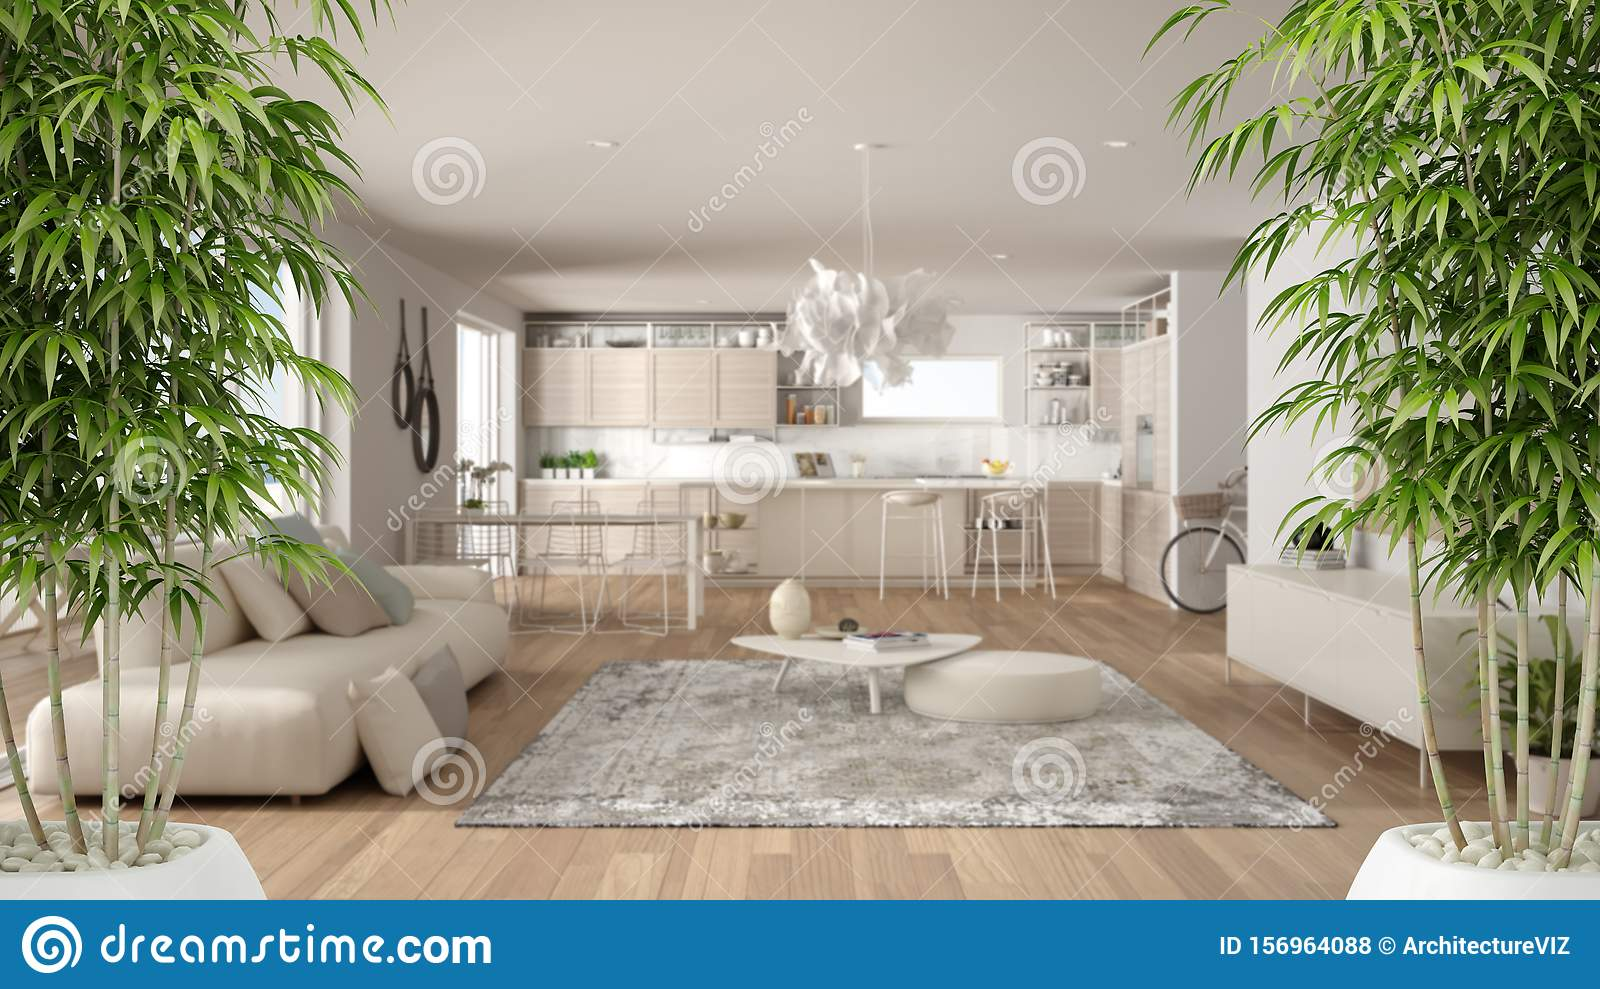 Zen Interior With Potted Bamboo Plant Natural Interior Design Concept Minimalist Luxury Living Room And Kitchen Contemporary Stock Photo Image Of Leaf Dining 156964088